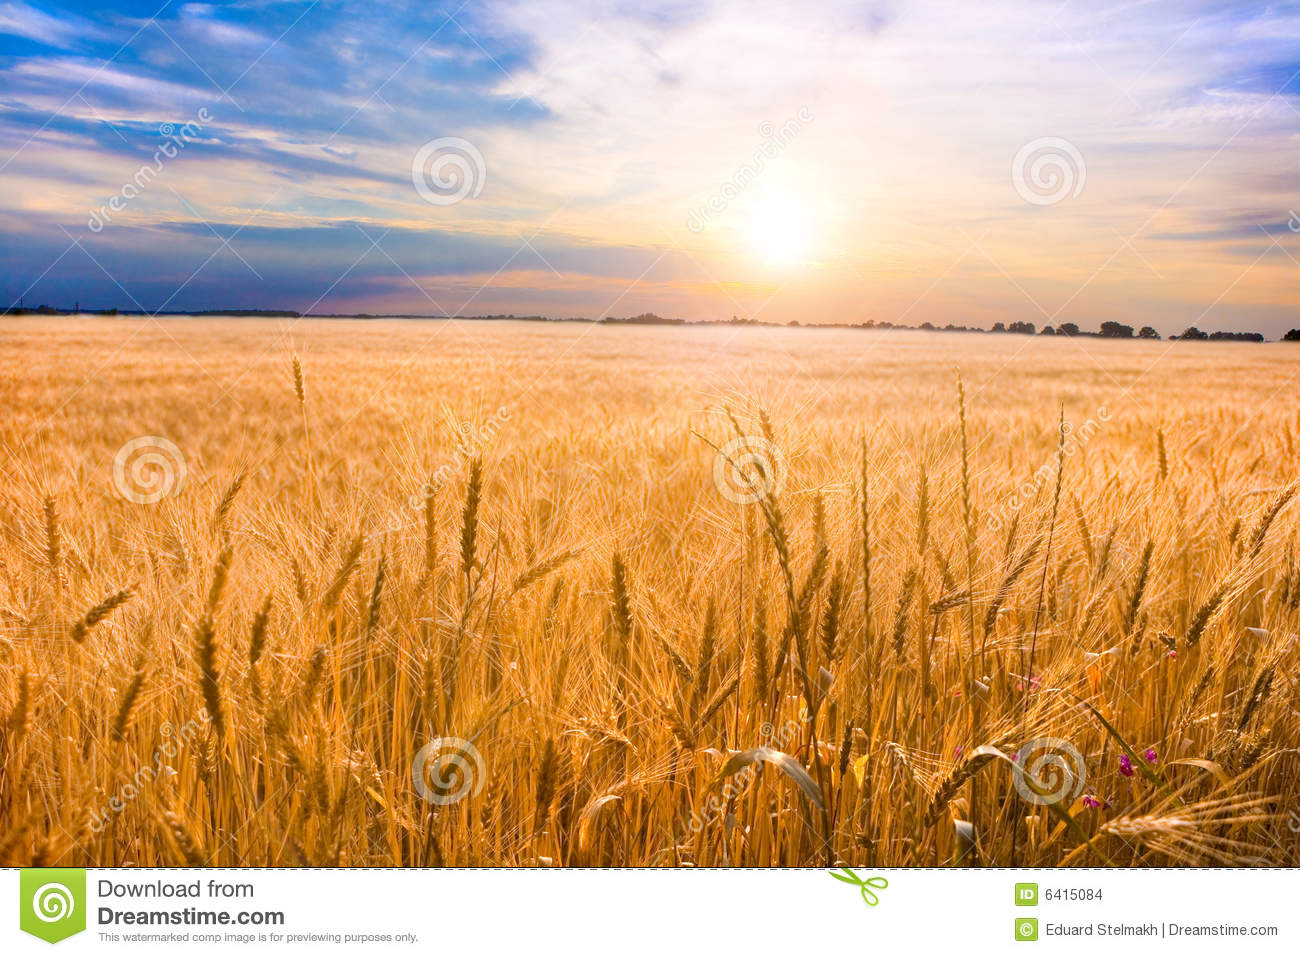 Golden wheat ready for harvest growing in a farm